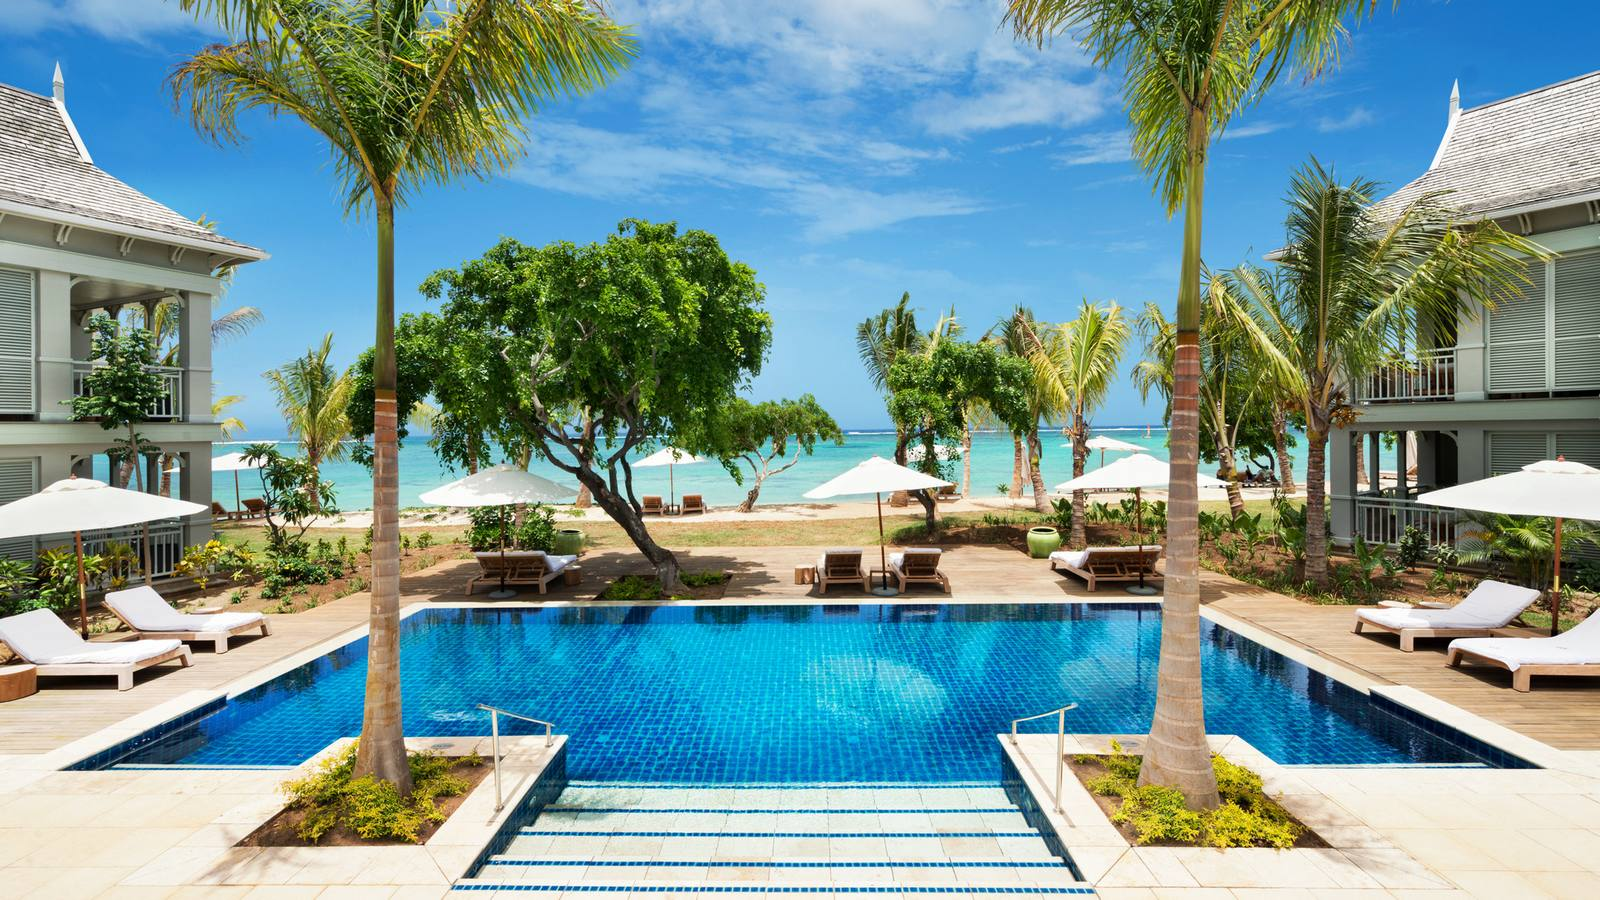 Mauritius, the african paradise that offer an amazing holiday for tourists